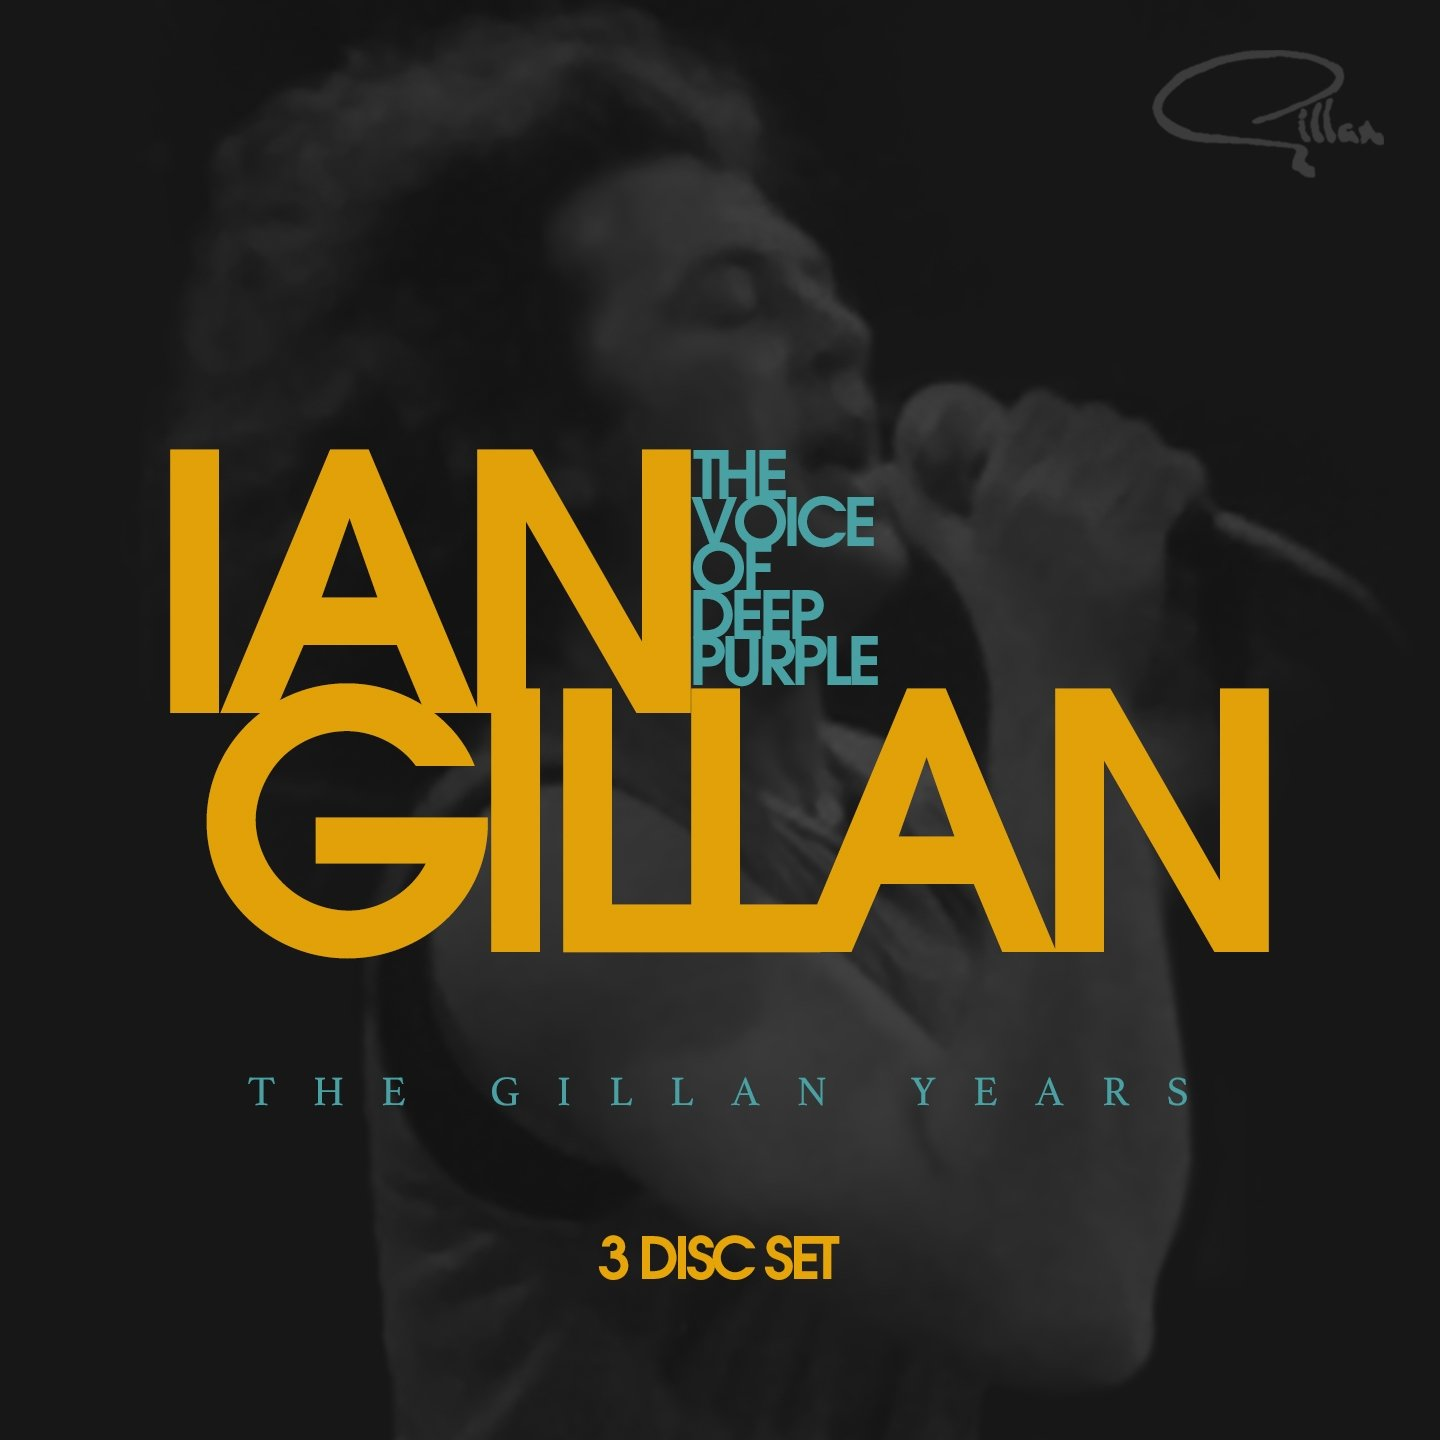 GILLAN, IAN - Voice Of Deep Purple: The Gillan Years - Amazon.com Music